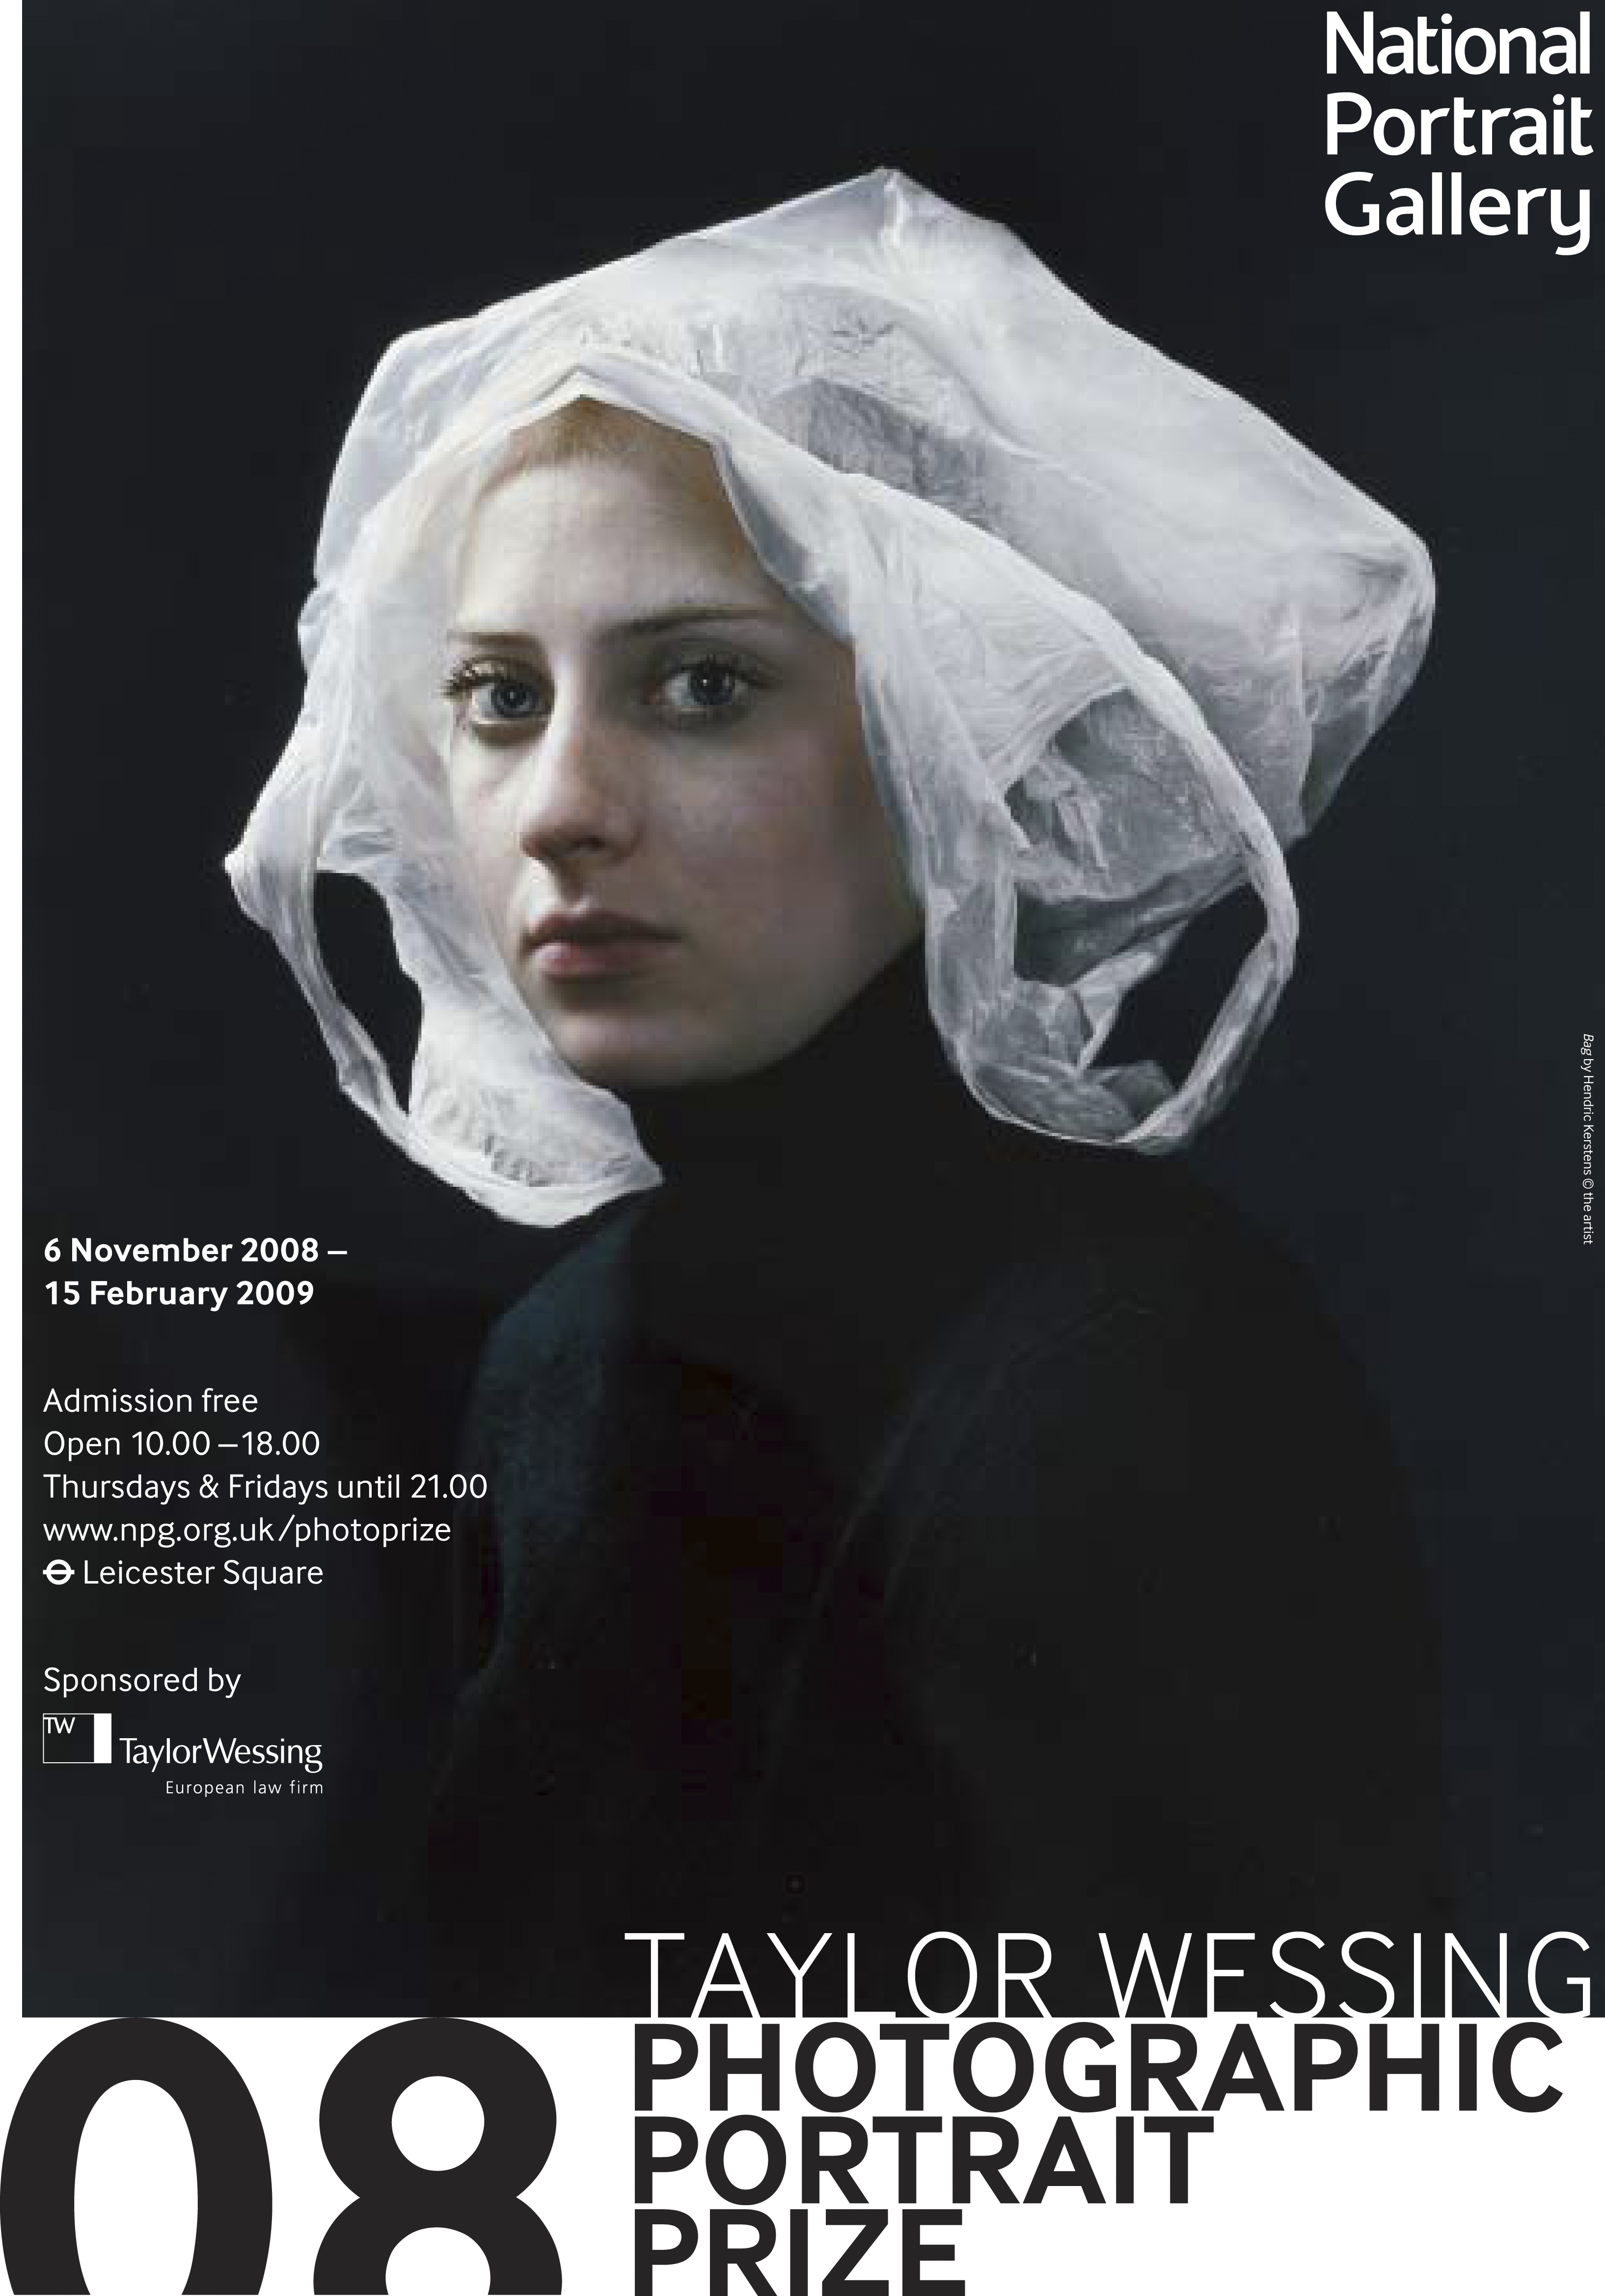 taylor wessing newsletter